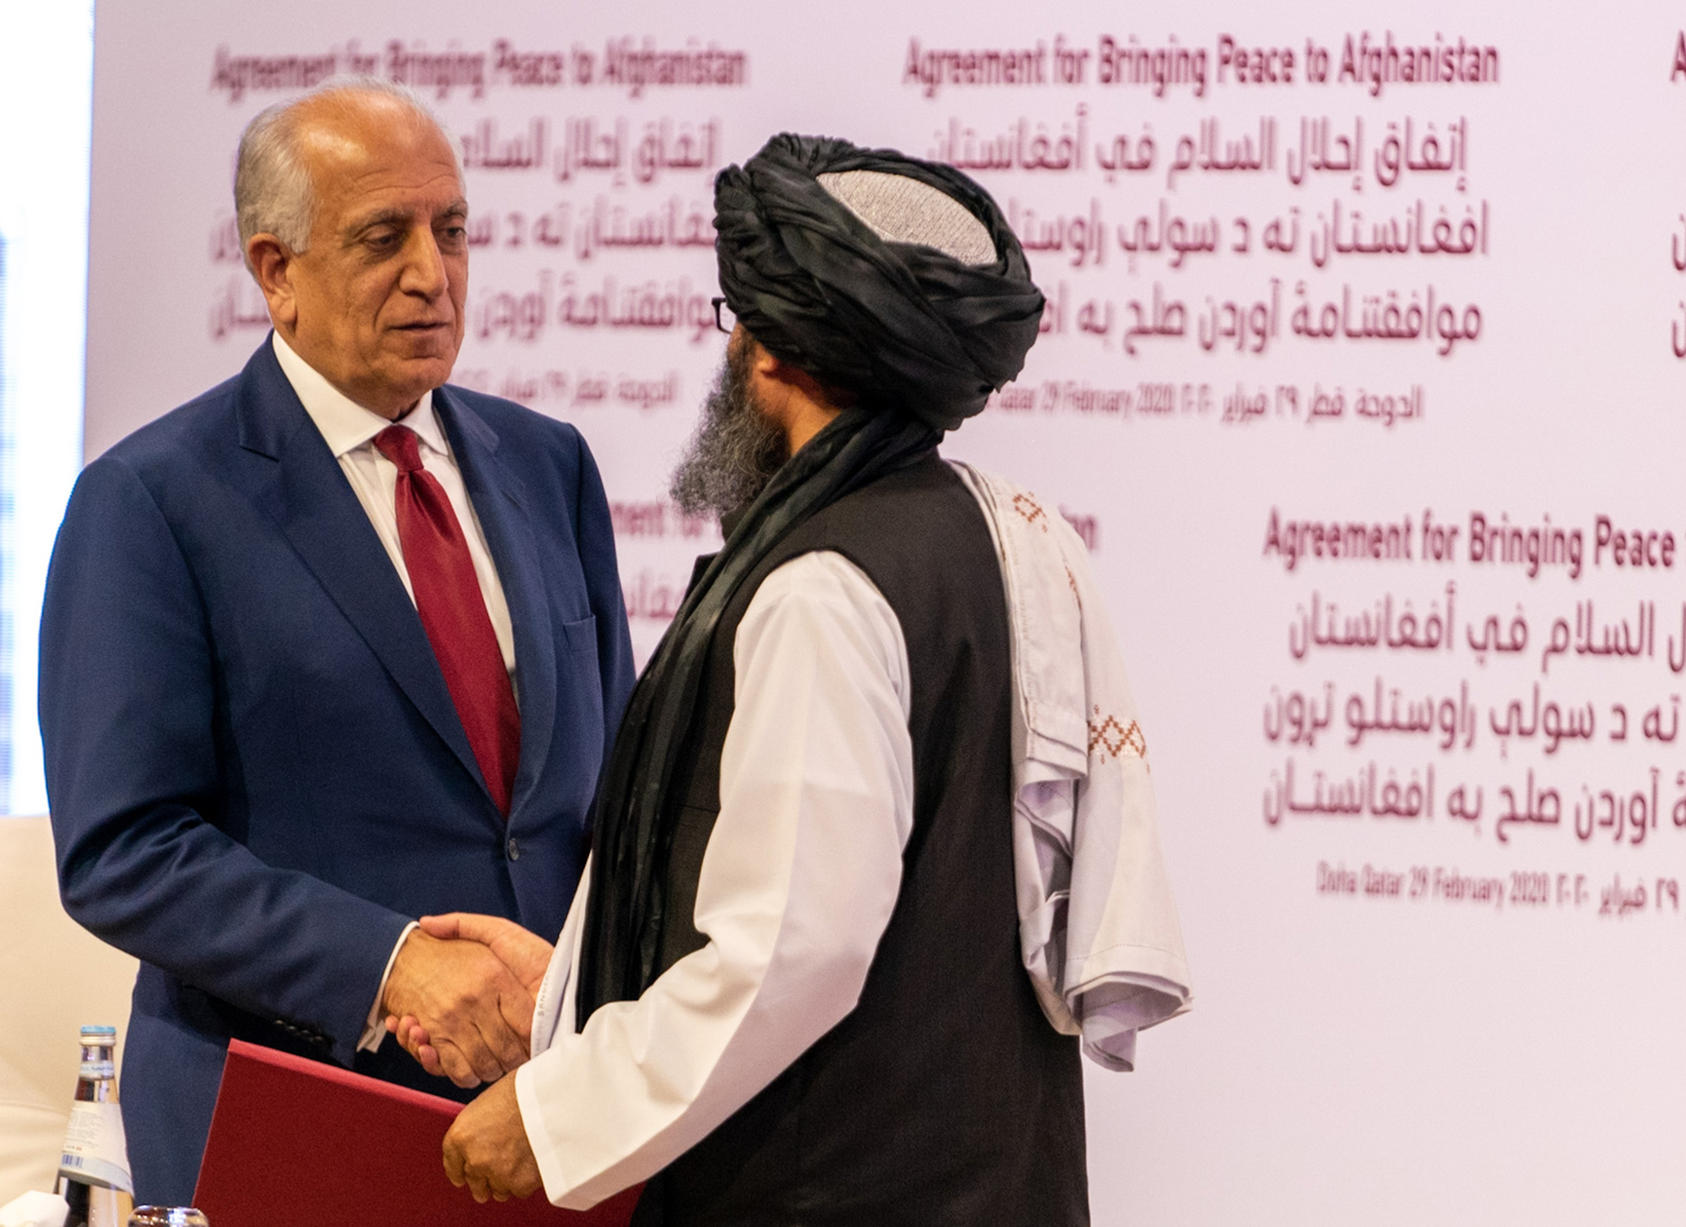 U.S. envoy Zalmay Khalilzad and Taliban negotiator Abdul Ghani Baradar speak after signing the February accord that is meant to be followed by intra-Afghan negotiations for a political settlement to end 40 years of war. (Ron Przysucha/State Department)